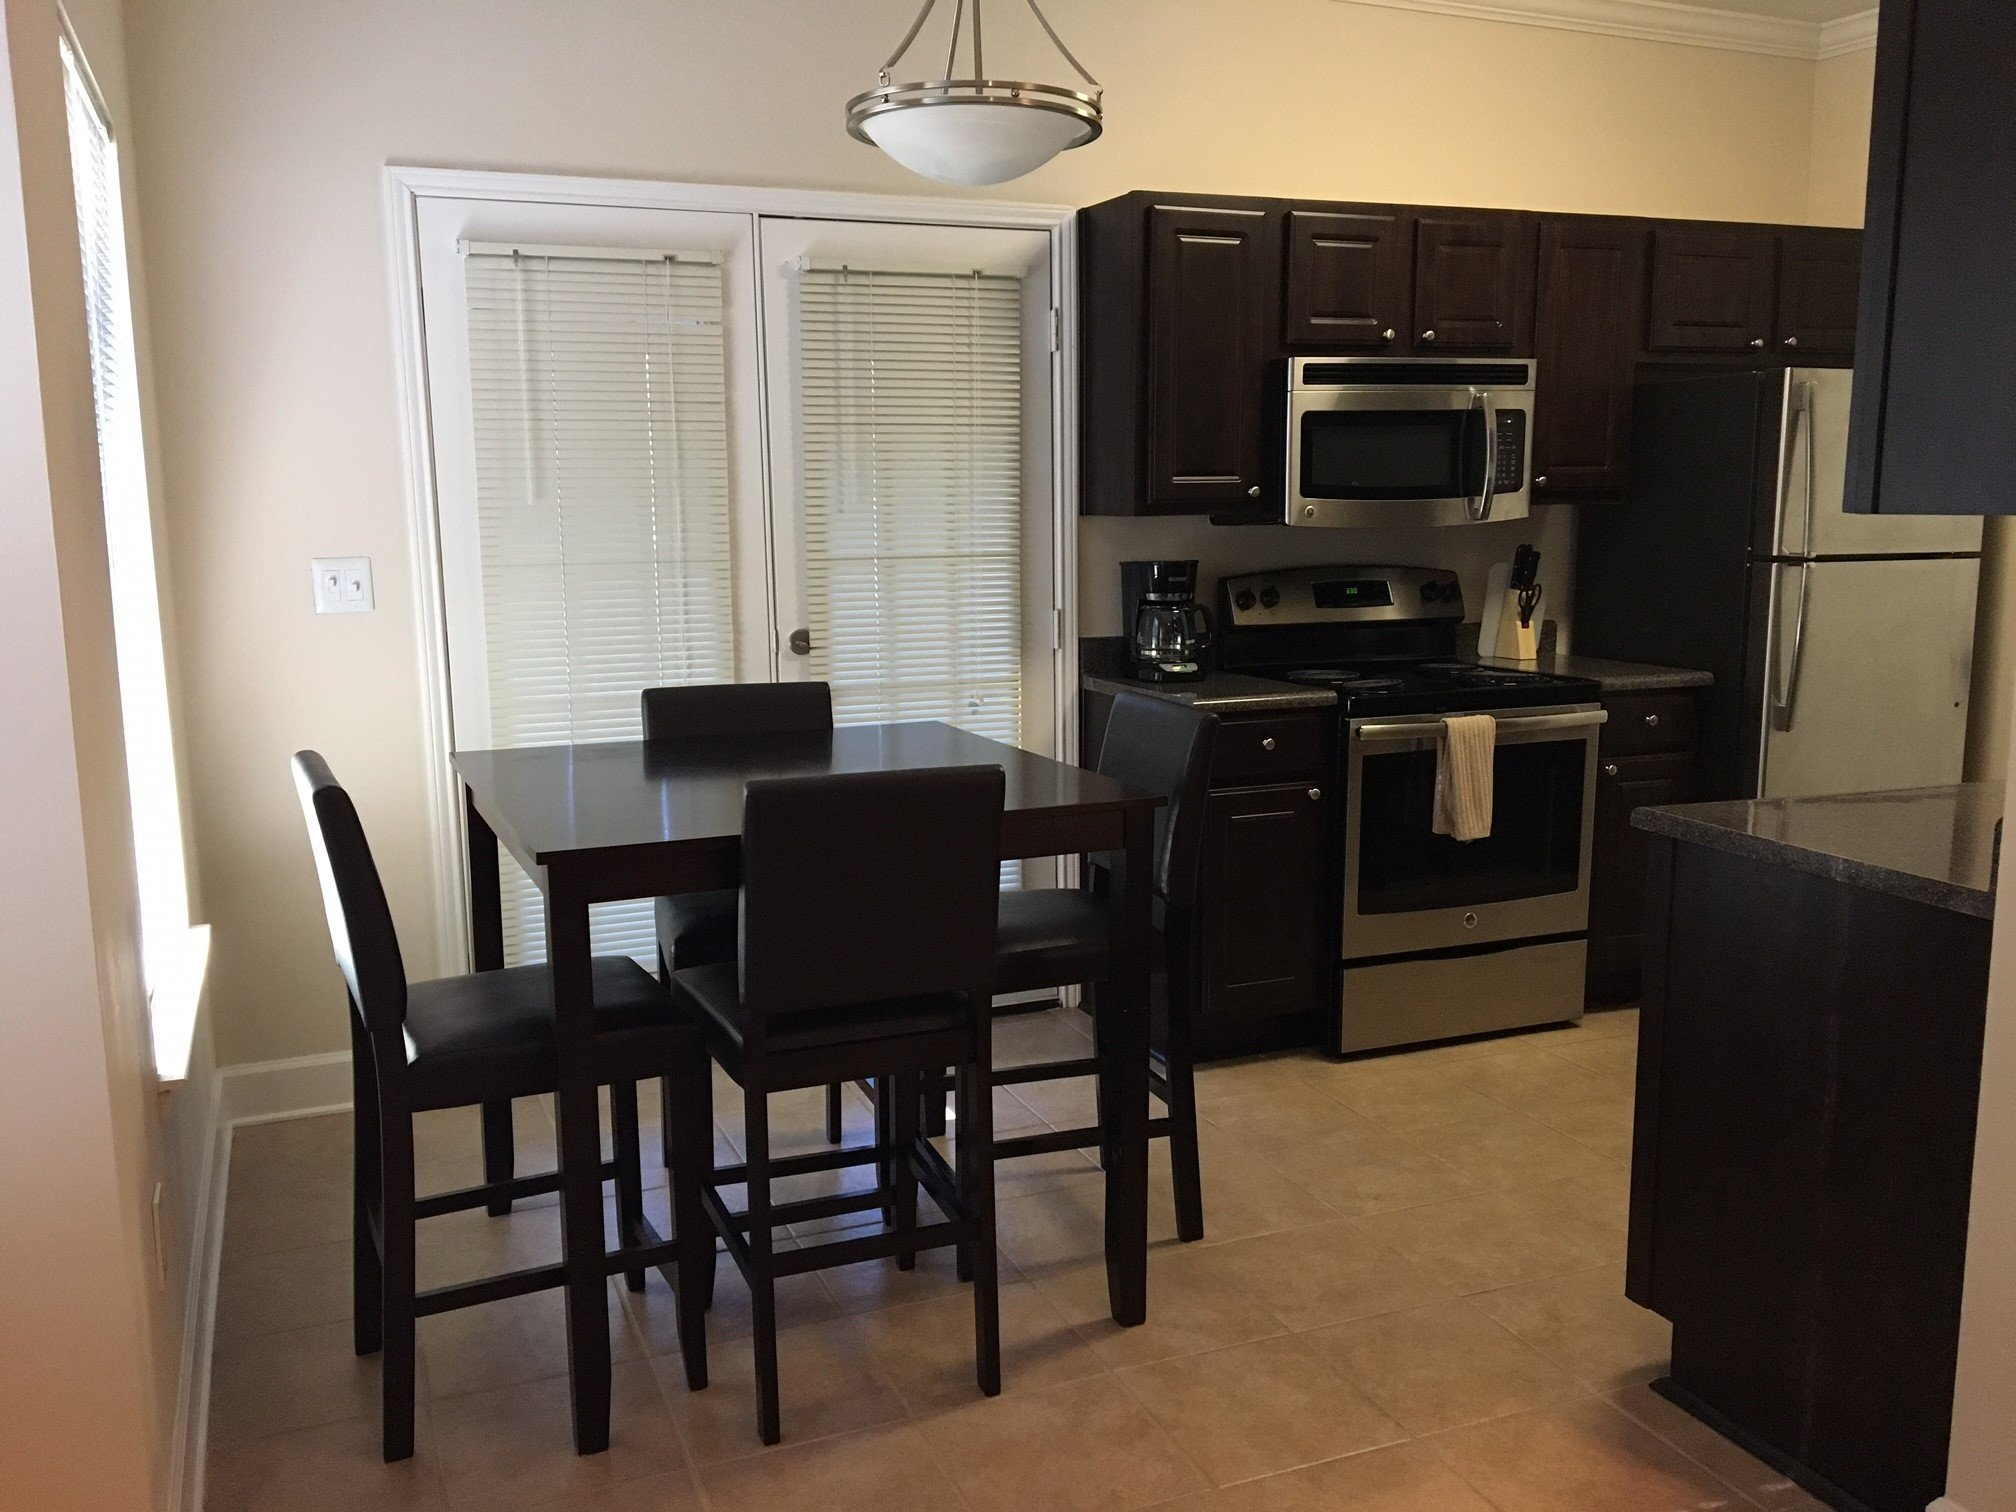 apartments for rent in bentonville, ar